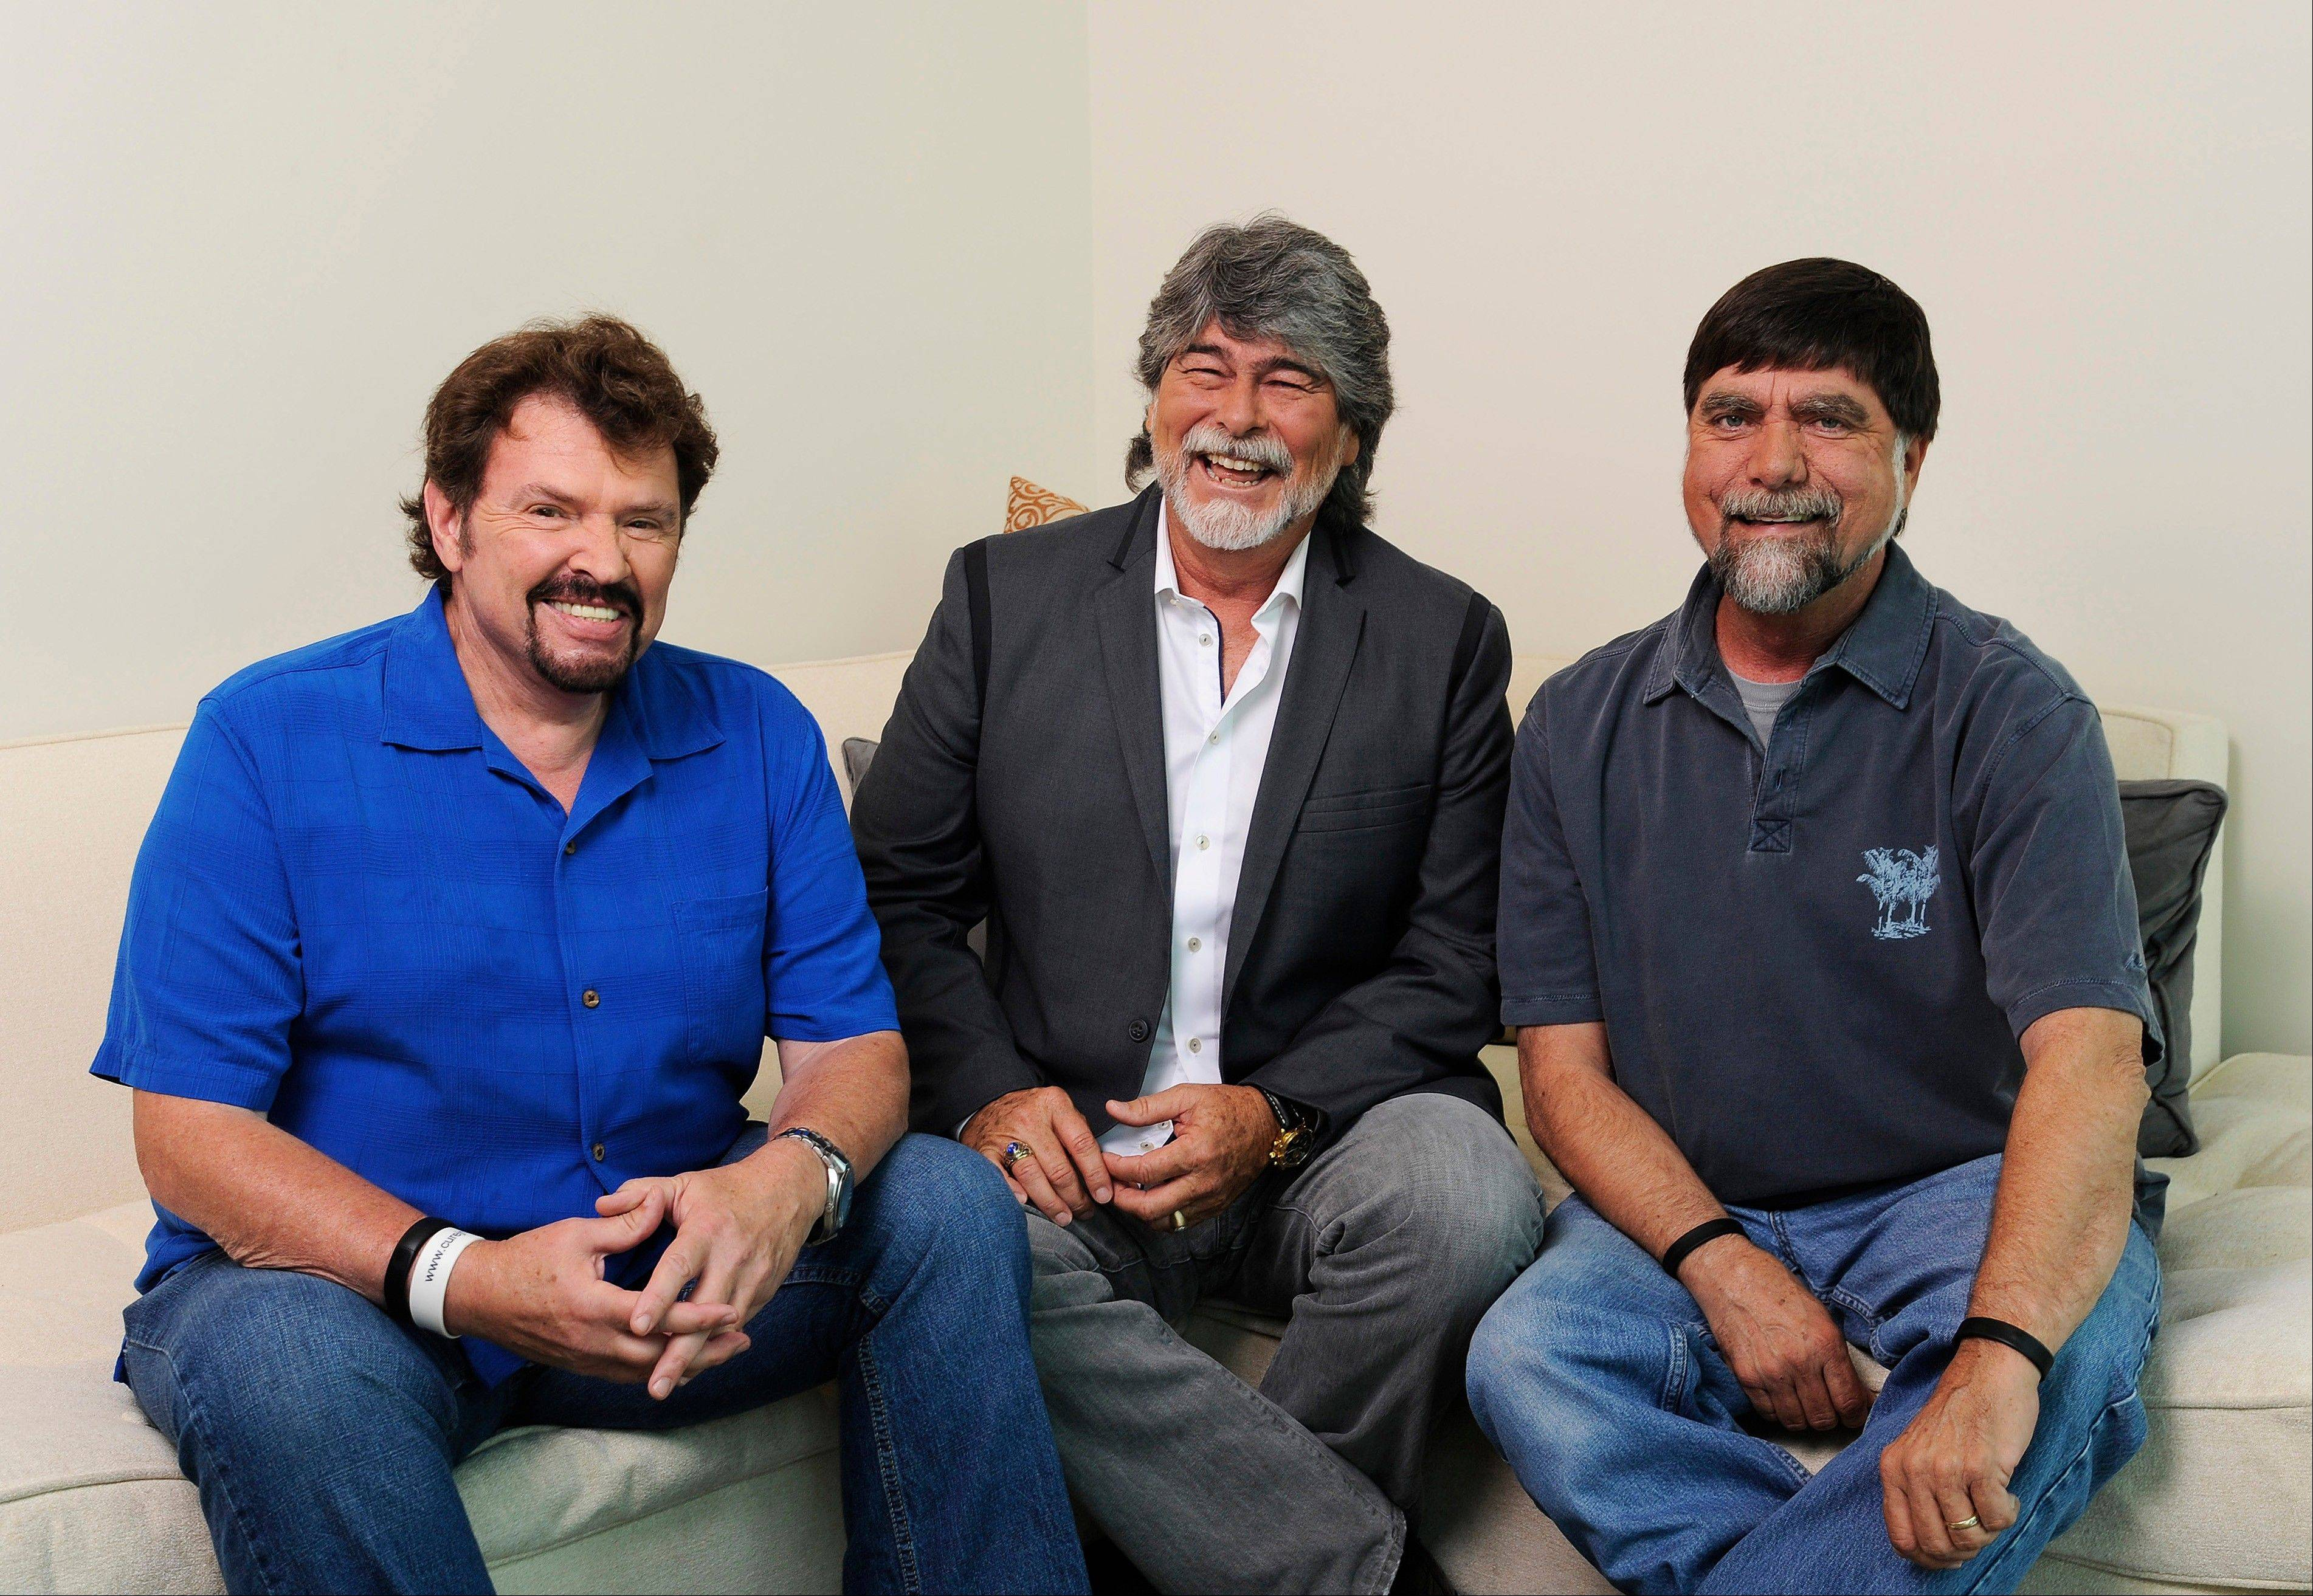 Jeff Cook, left, Randy Owen and Teddy Gentry of Alabama play the Pavilion at Ravinia at 8 p.m. Friday, Aug. 30.